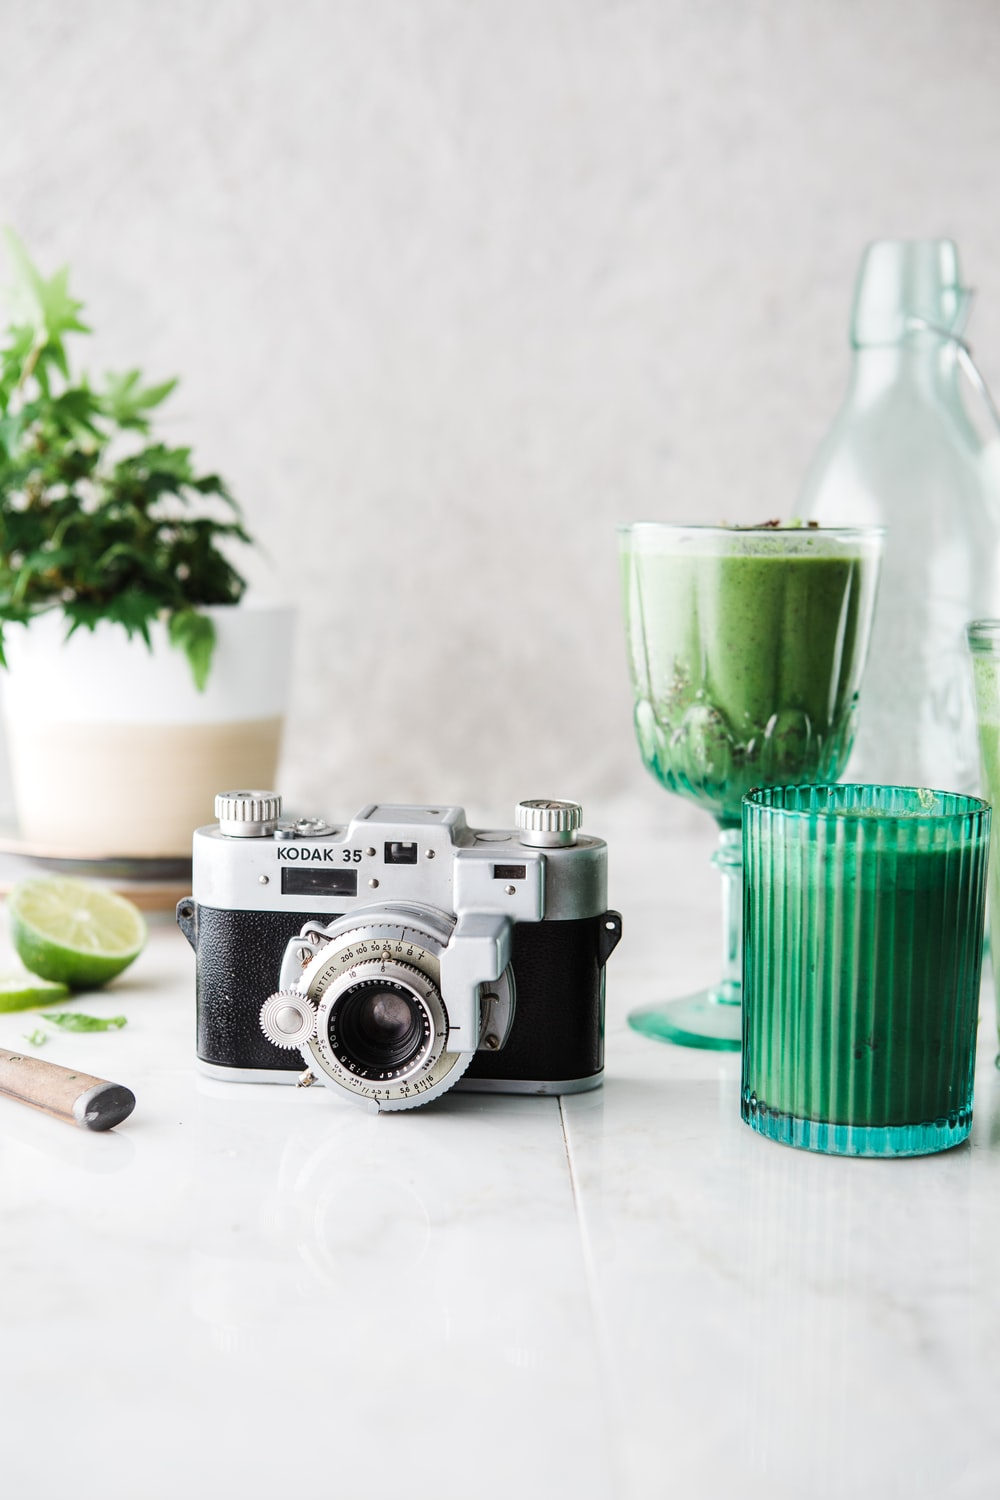 Best Green Smoothie Recipes For Weight Loss